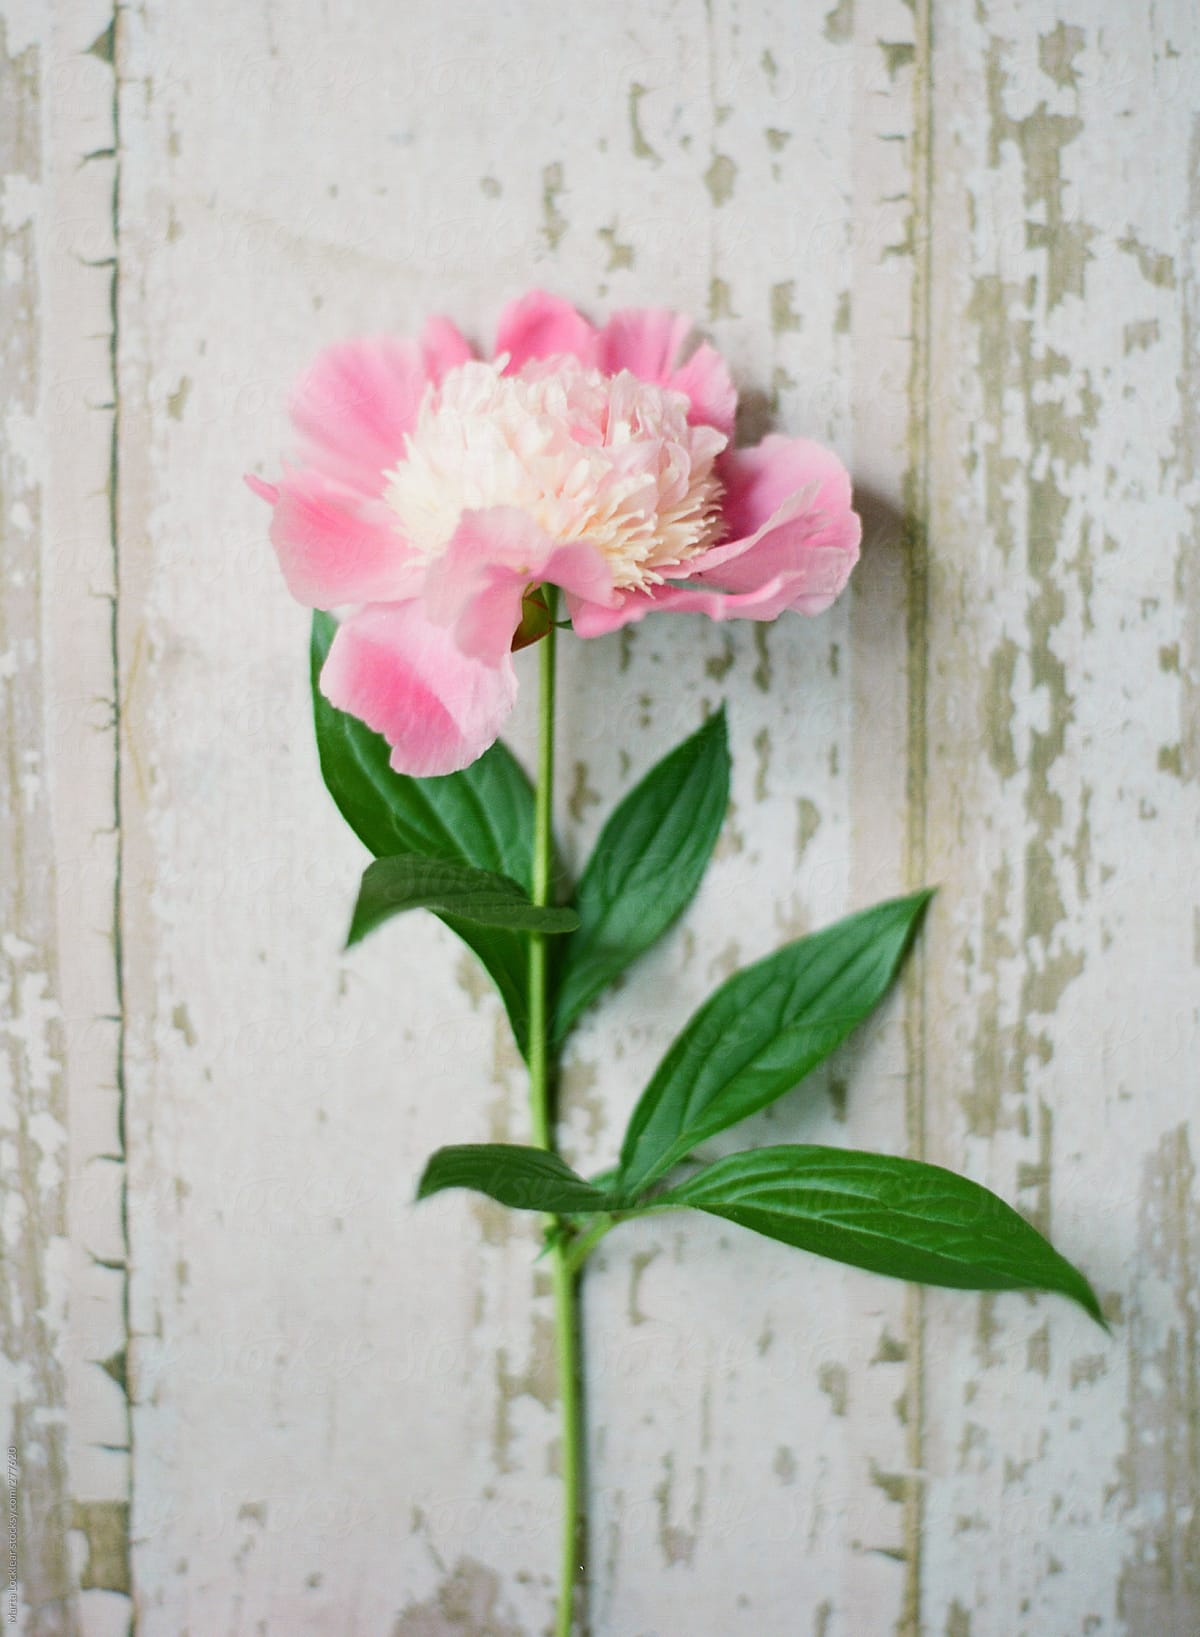 Stock Photo Single Stems Of Pink And White Peony Flowers And Blooms